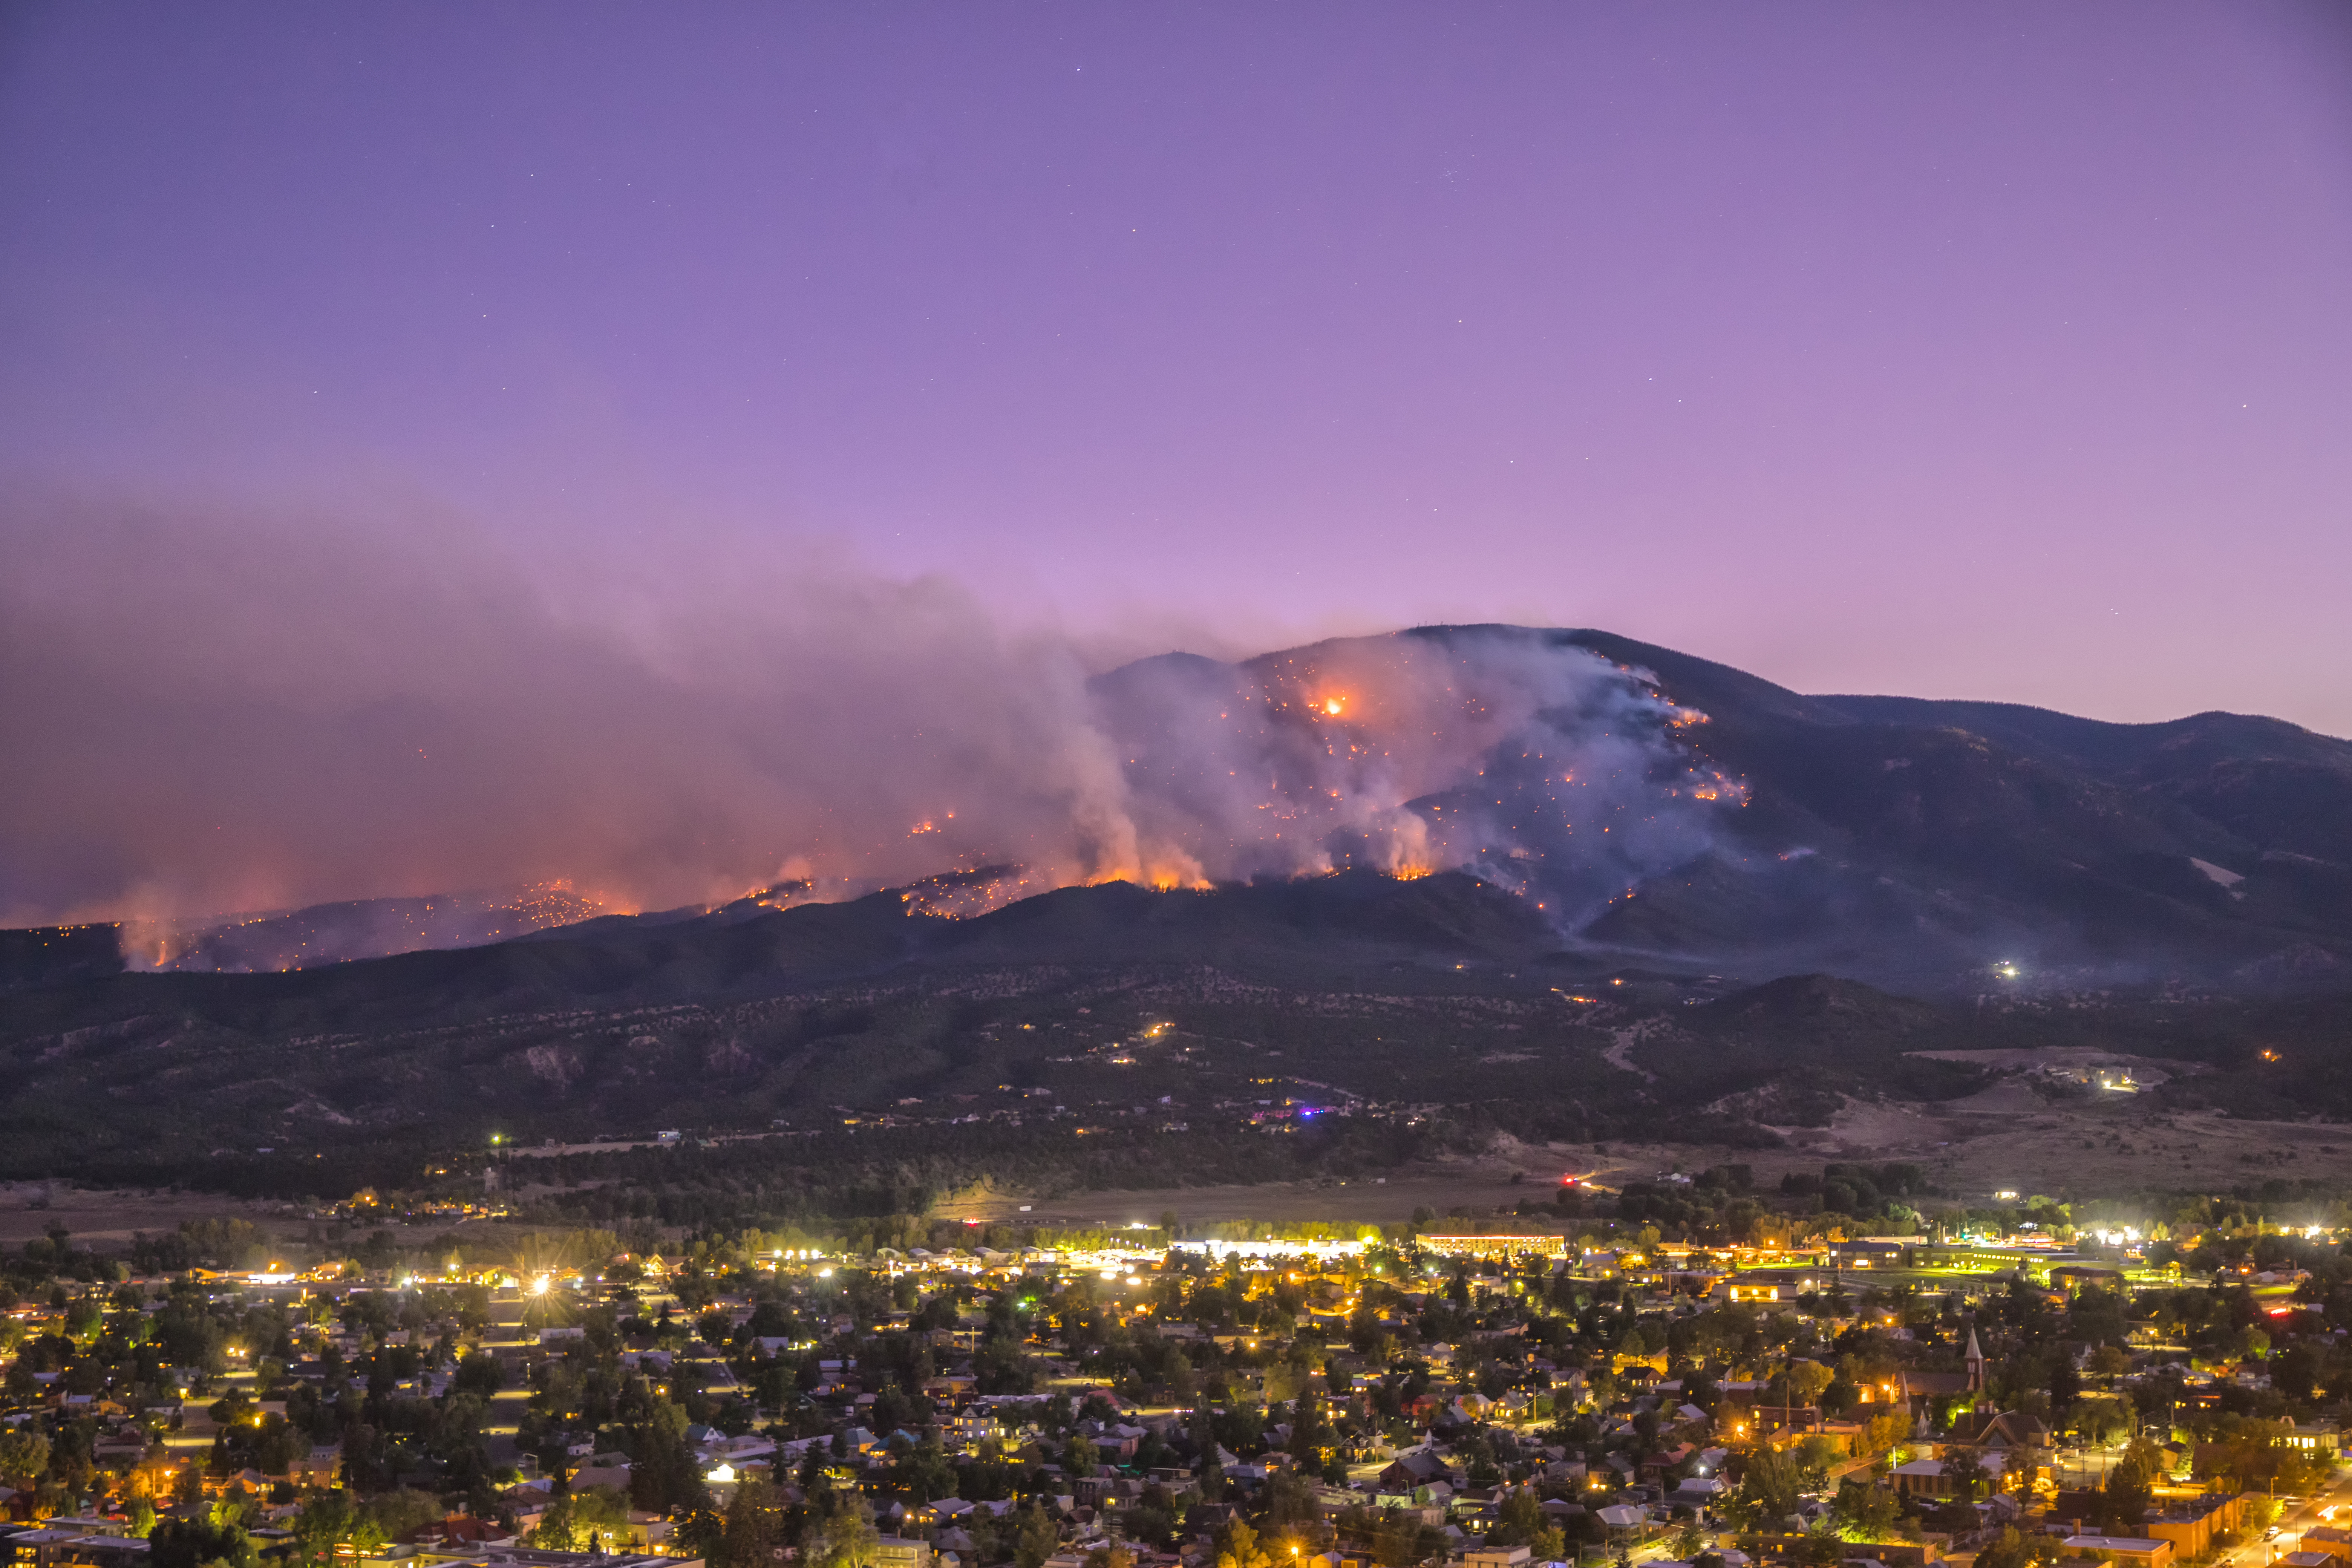 The Decker Fire near Salida, Colorado the morning the author was evacuated. Credit: Joe Randall